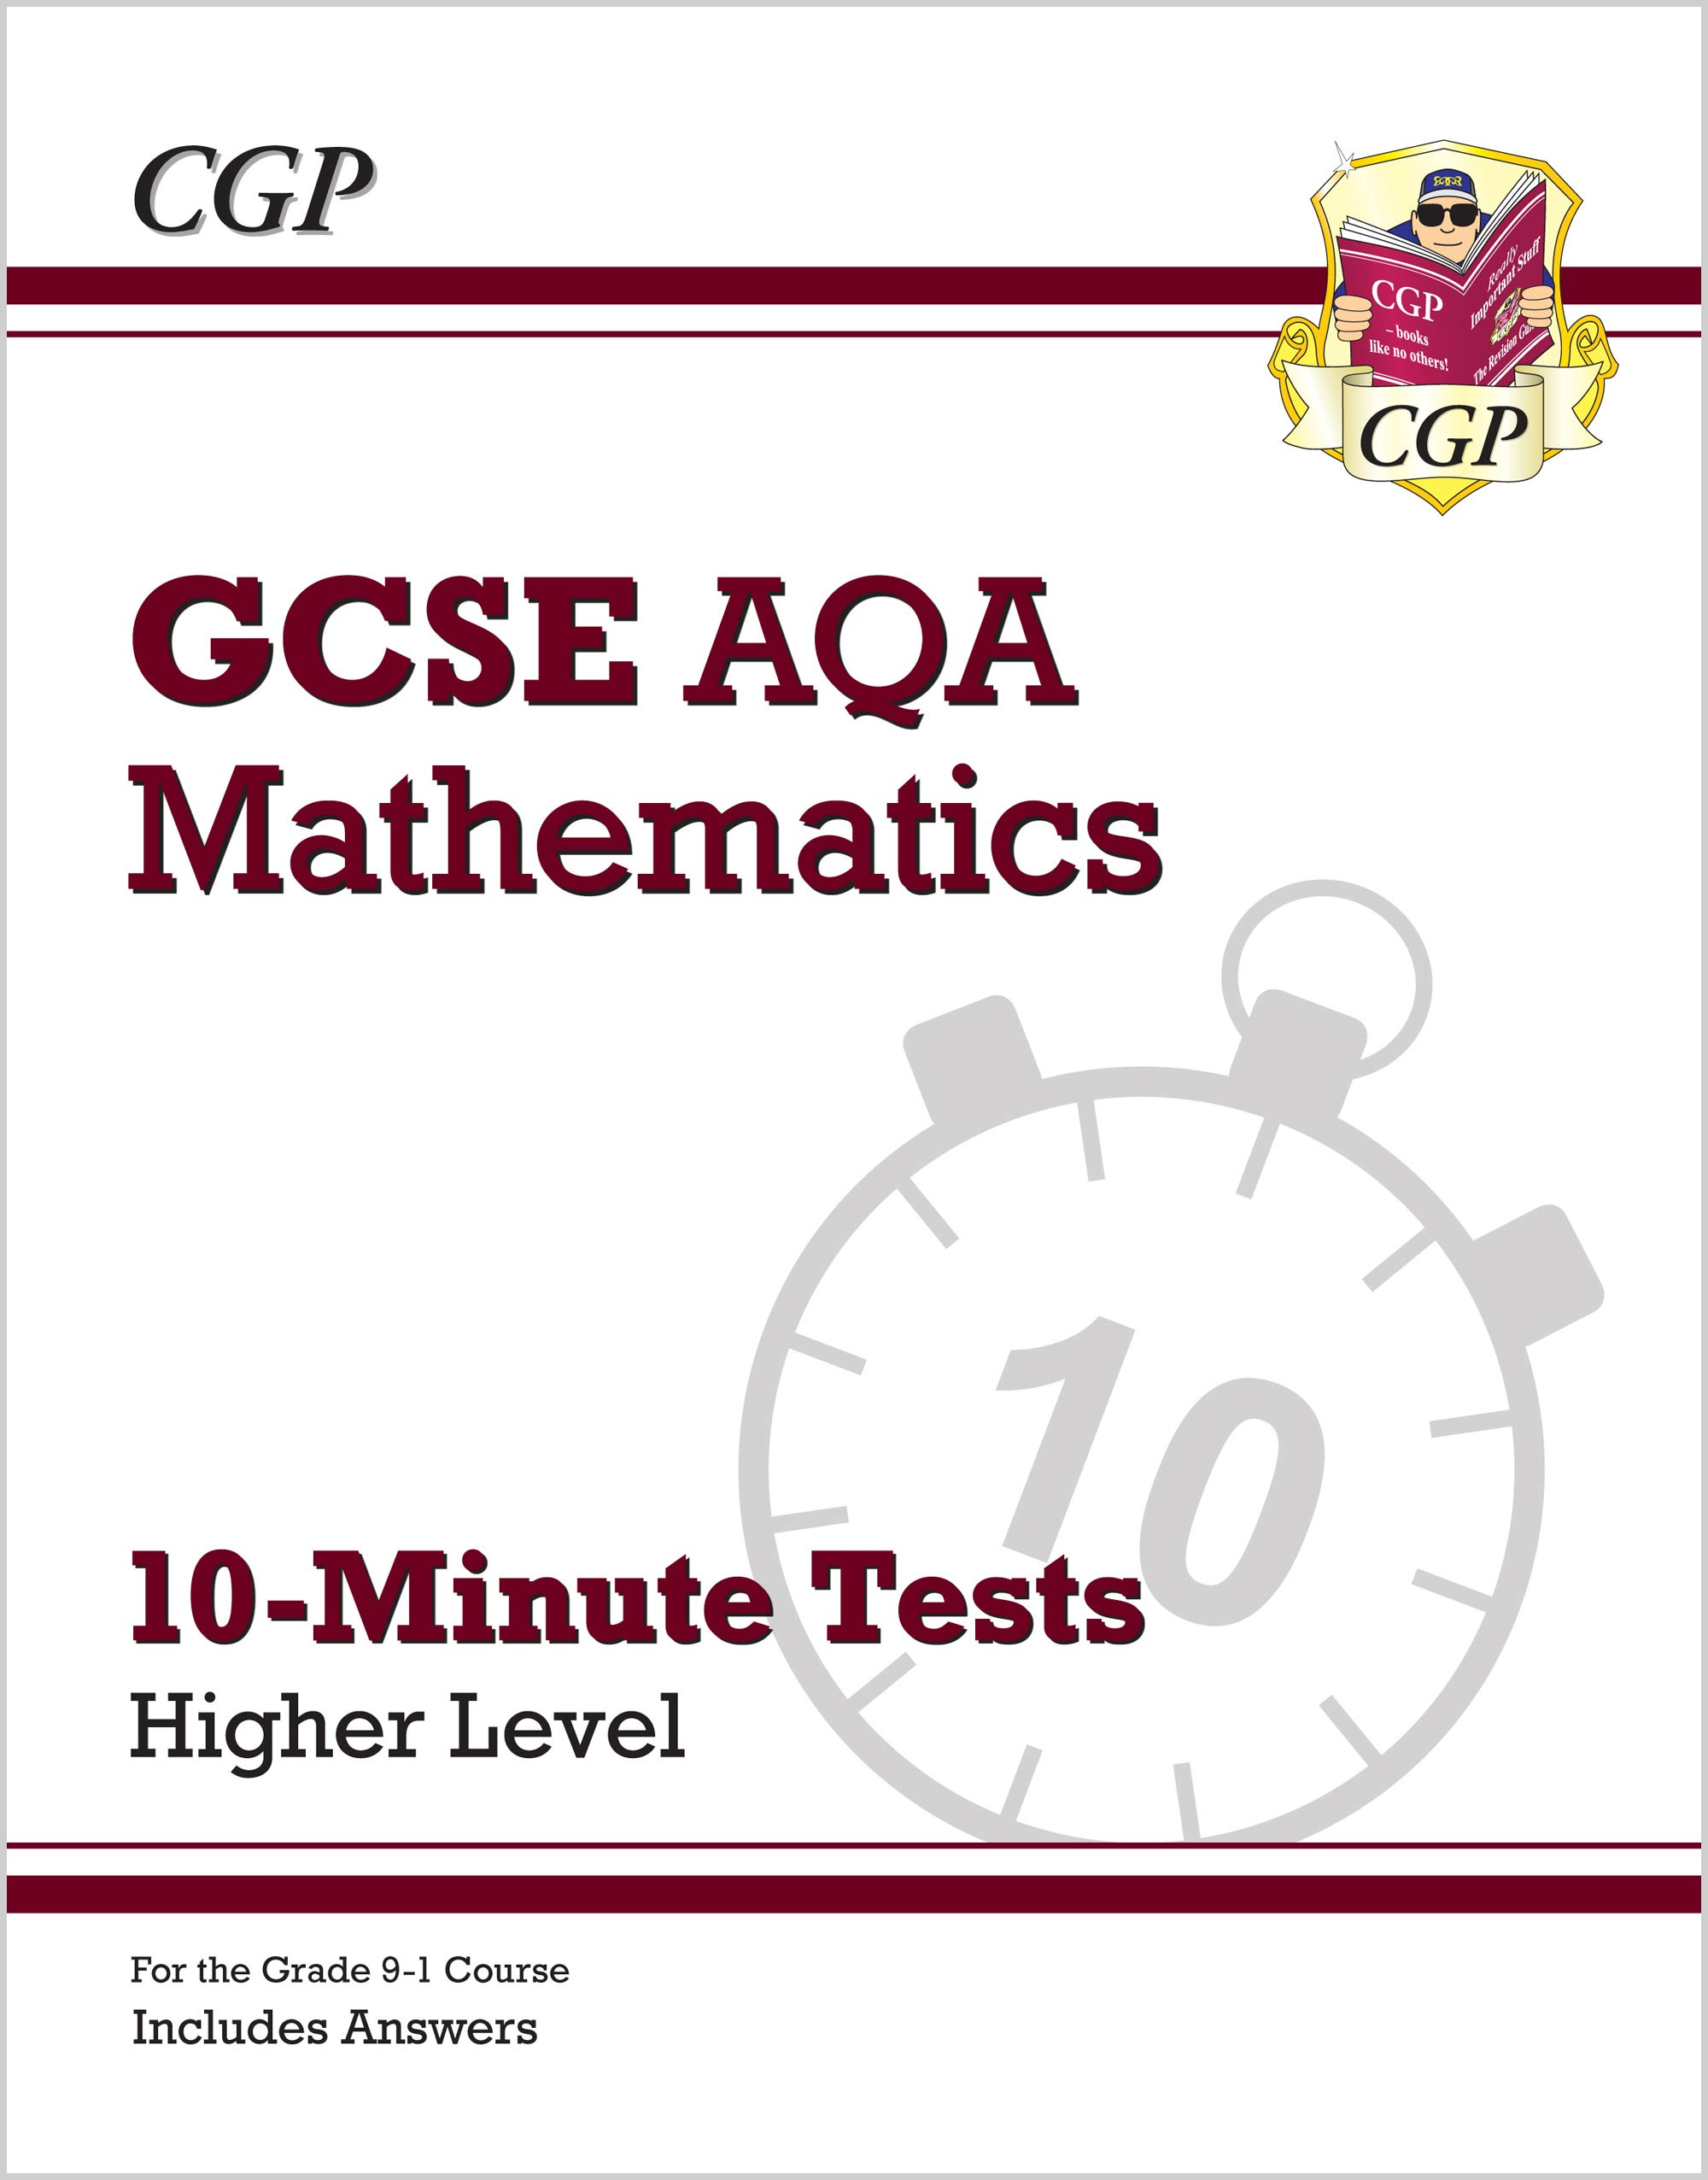 MQHXP41 - Grade 9-1 GCSE Maths AQA 10-Minute Tests - Higher (includes Answers)